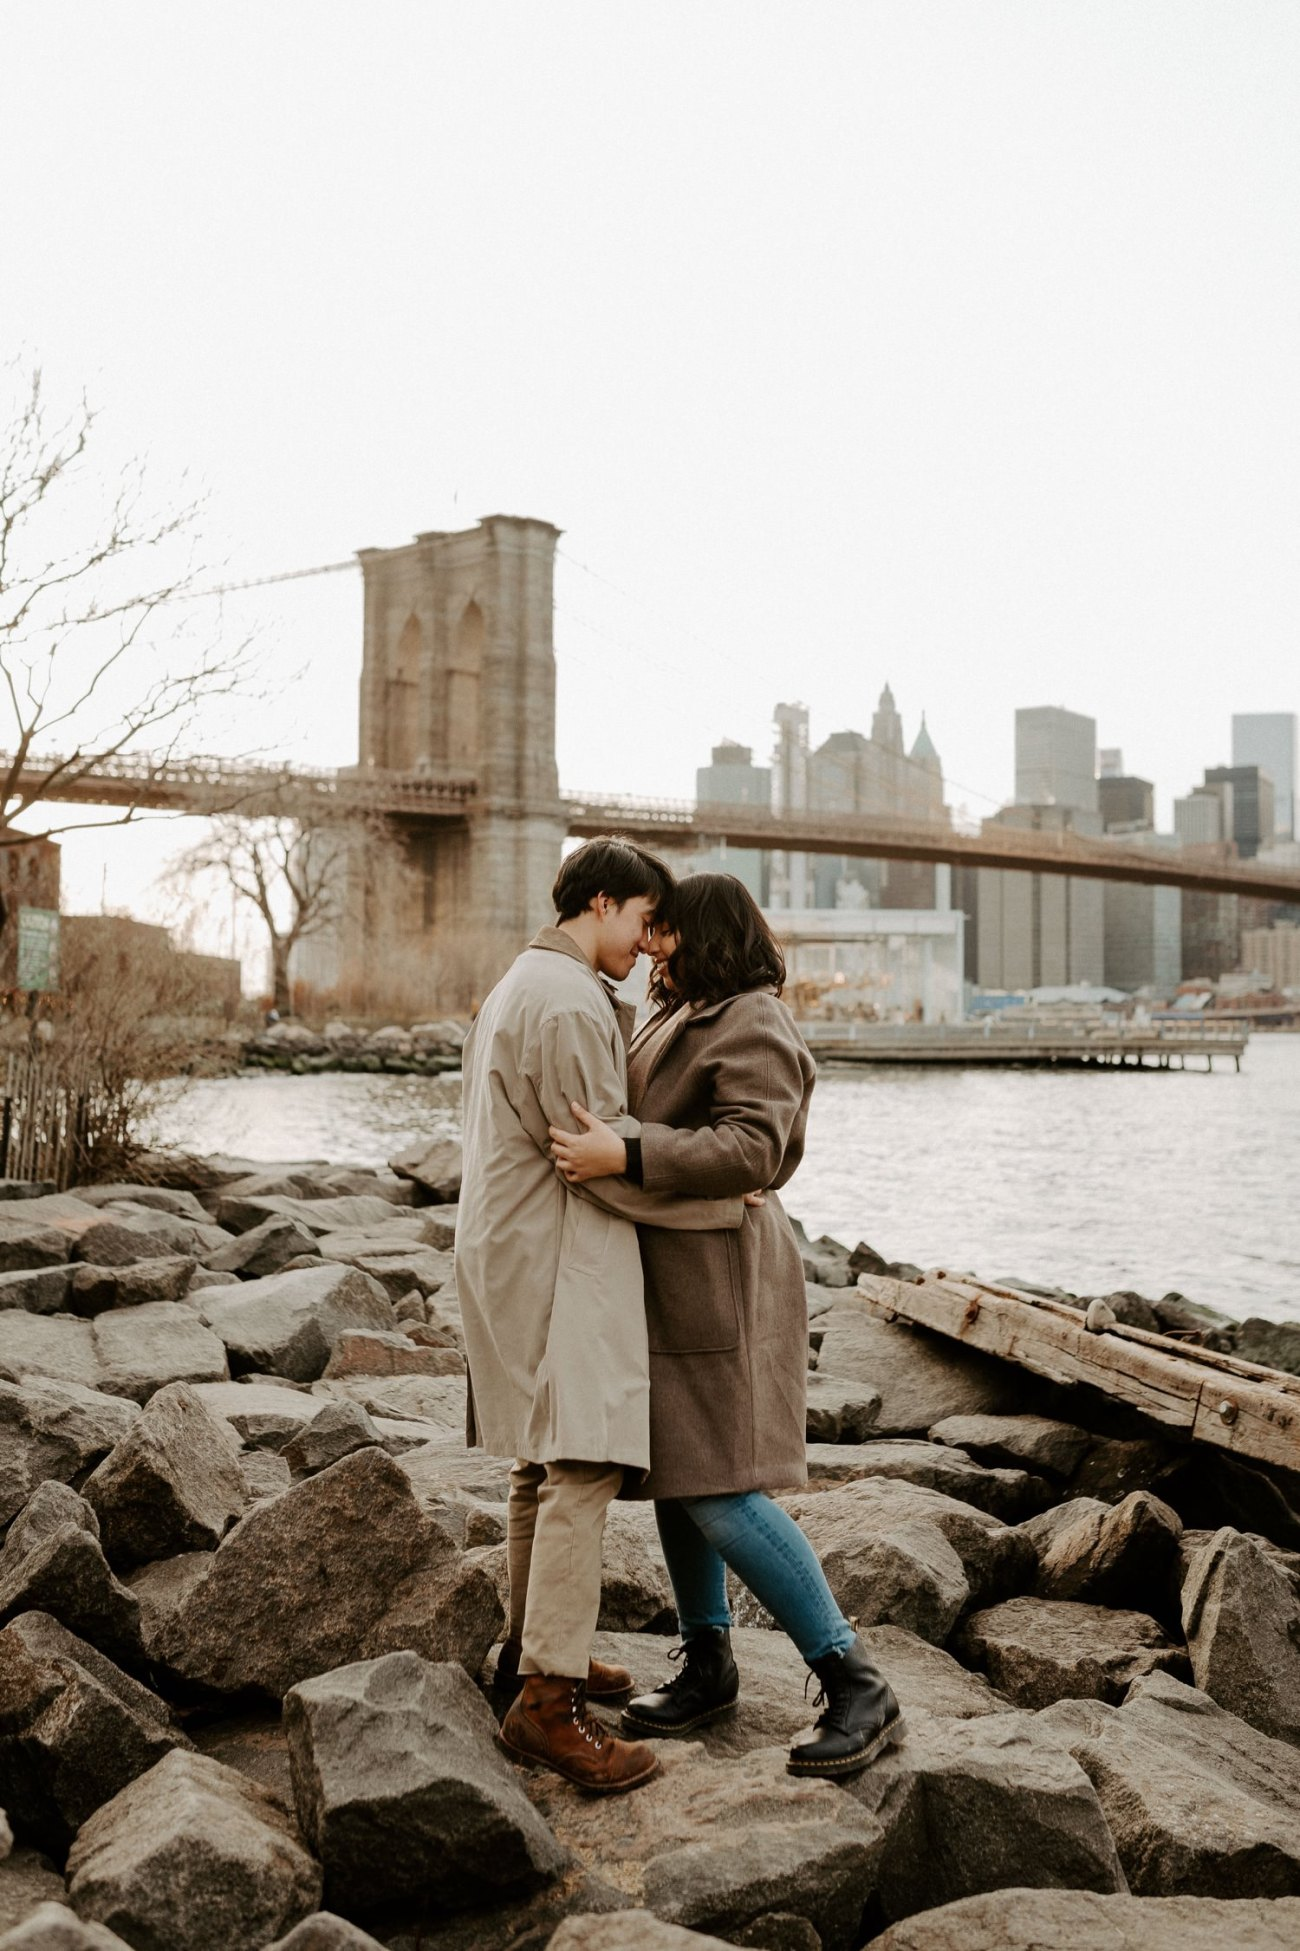 Dumbo Brooklyn Engagement Photos New York City Couple Session New York Wedding Photographer NYC Best Engagement Photos Location Anais Possamai Photography 39